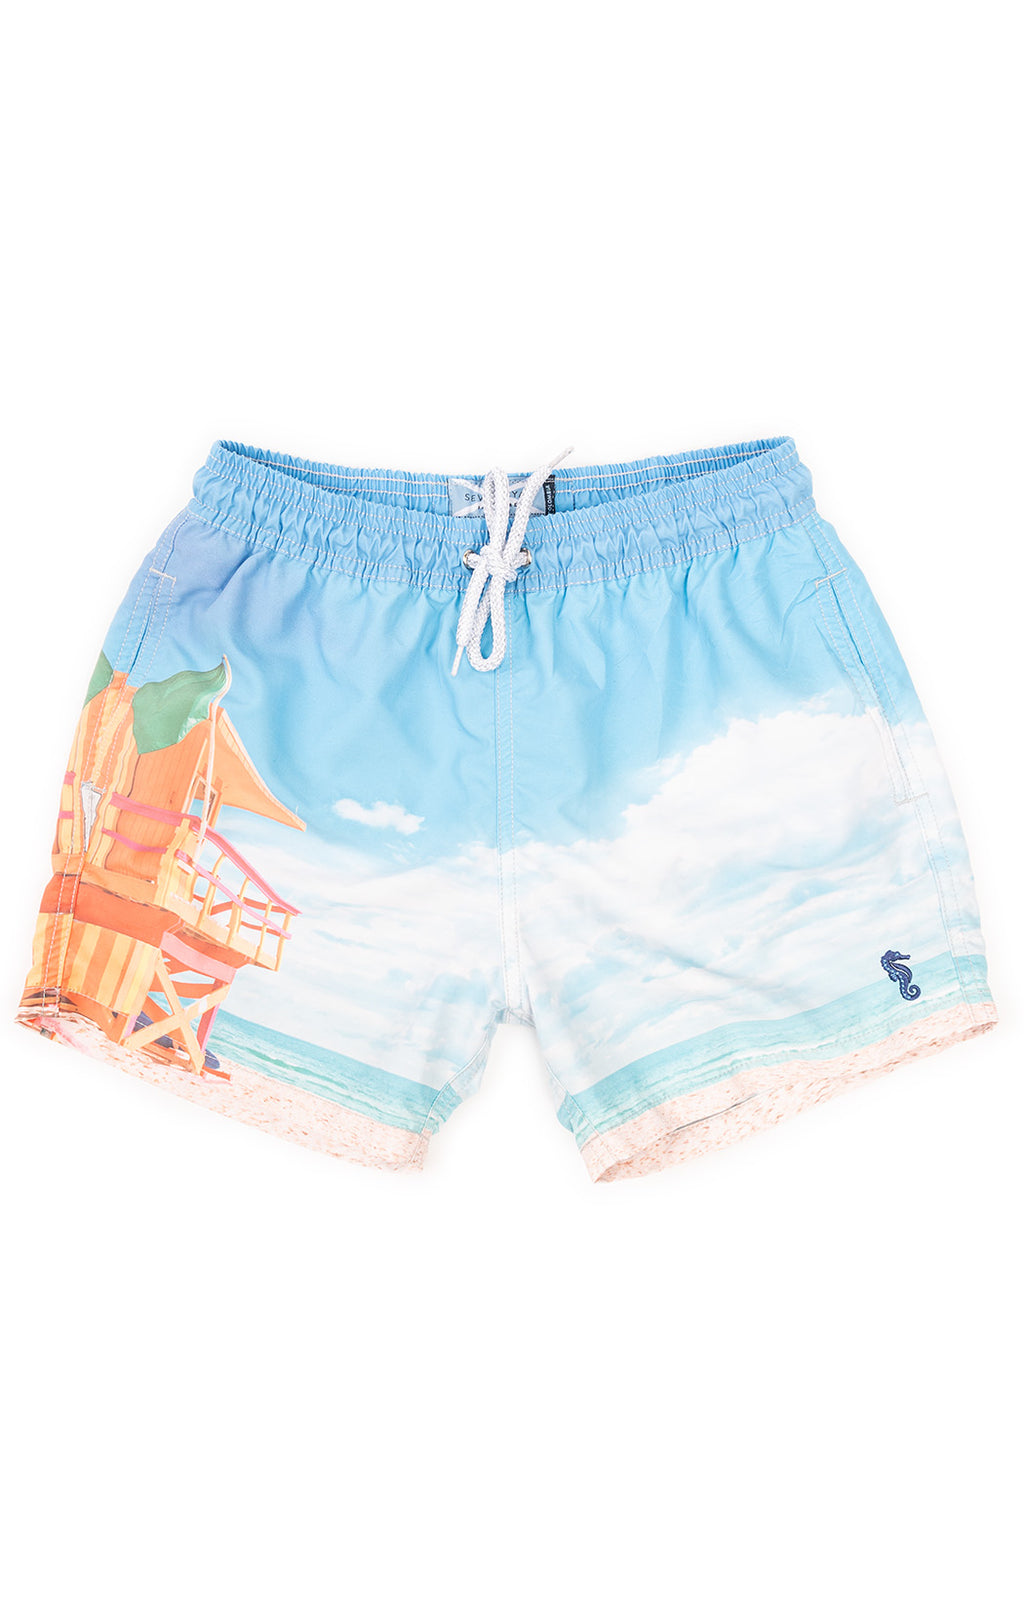 Blue and orange print swim trucks with drawstring waist and side and back pockets